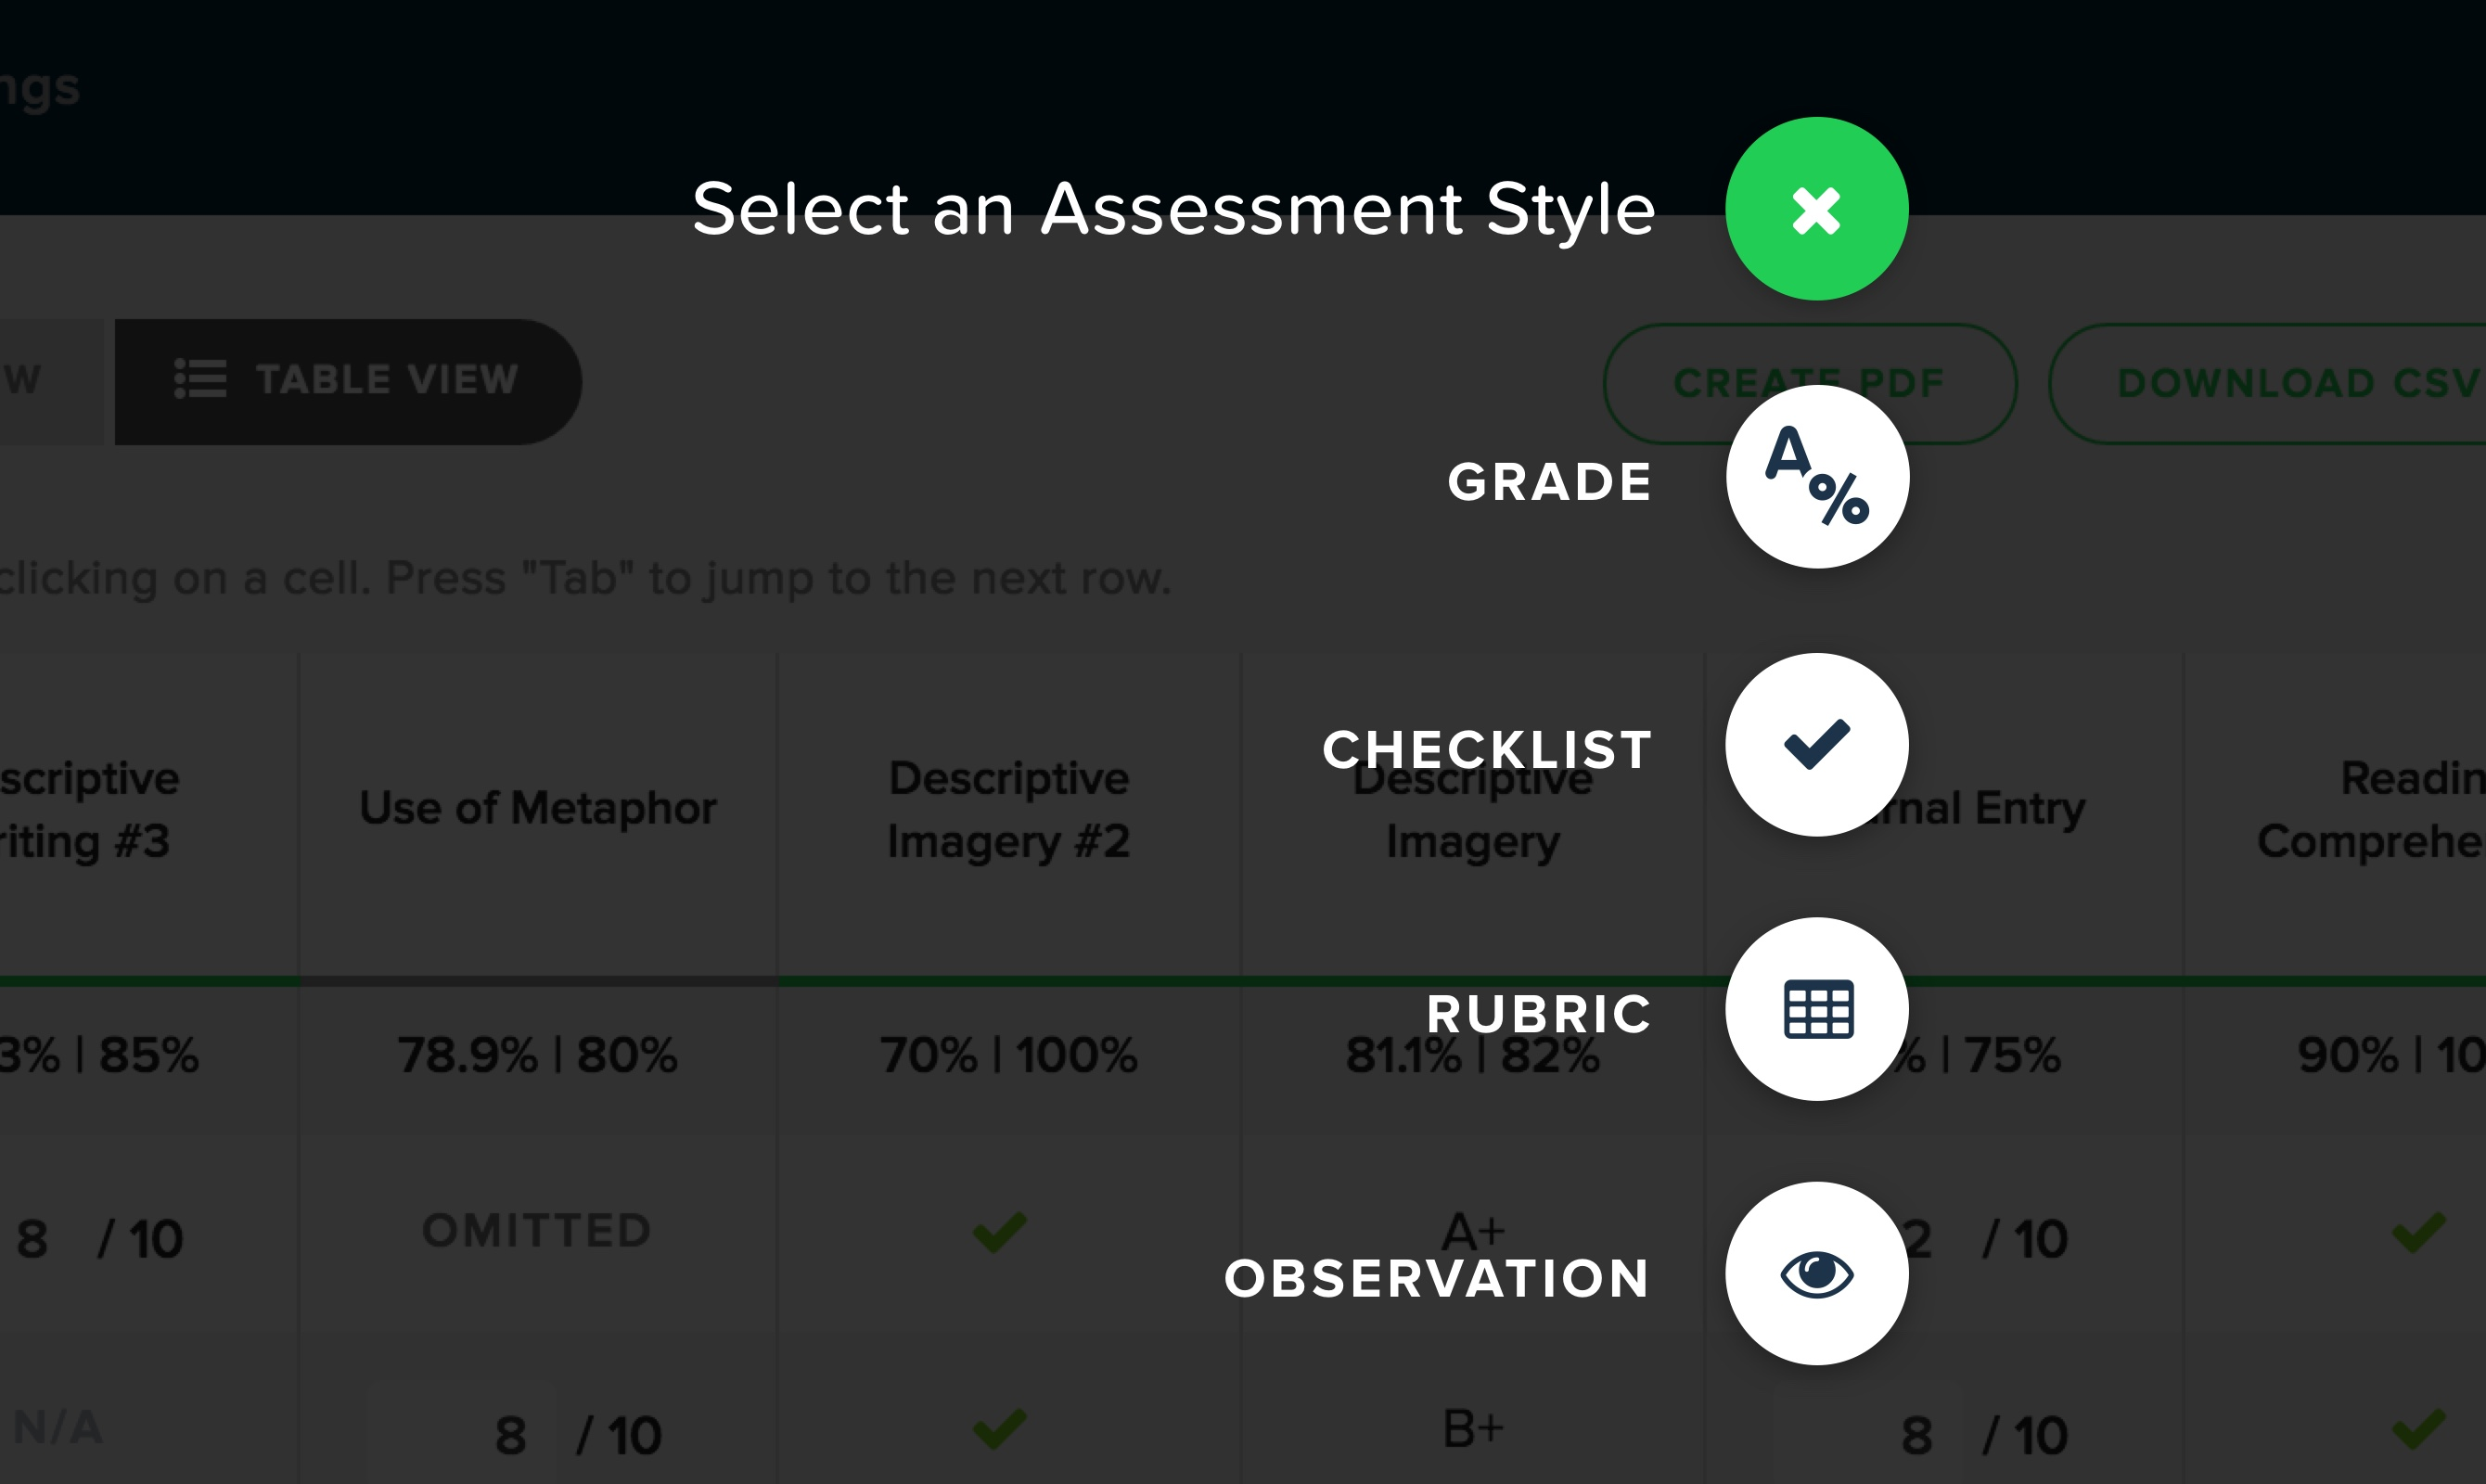 Assessment style@2x